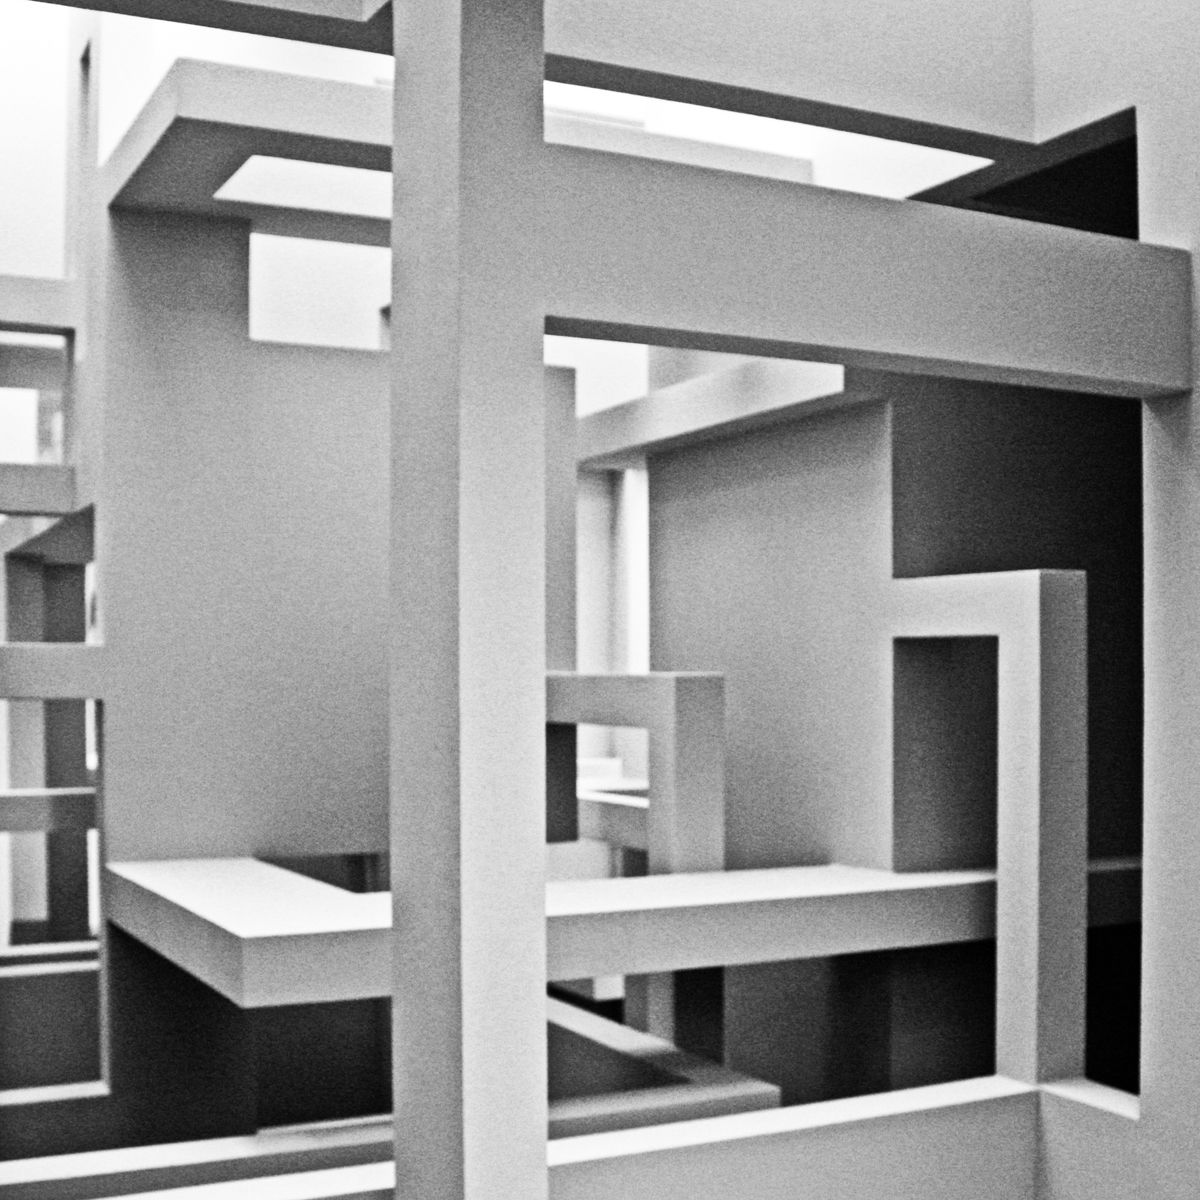 modern architecture de stijl architecture Find out information about modern architecture new architectural name de stijl, and a applied to modern architecture by the museum of modern.